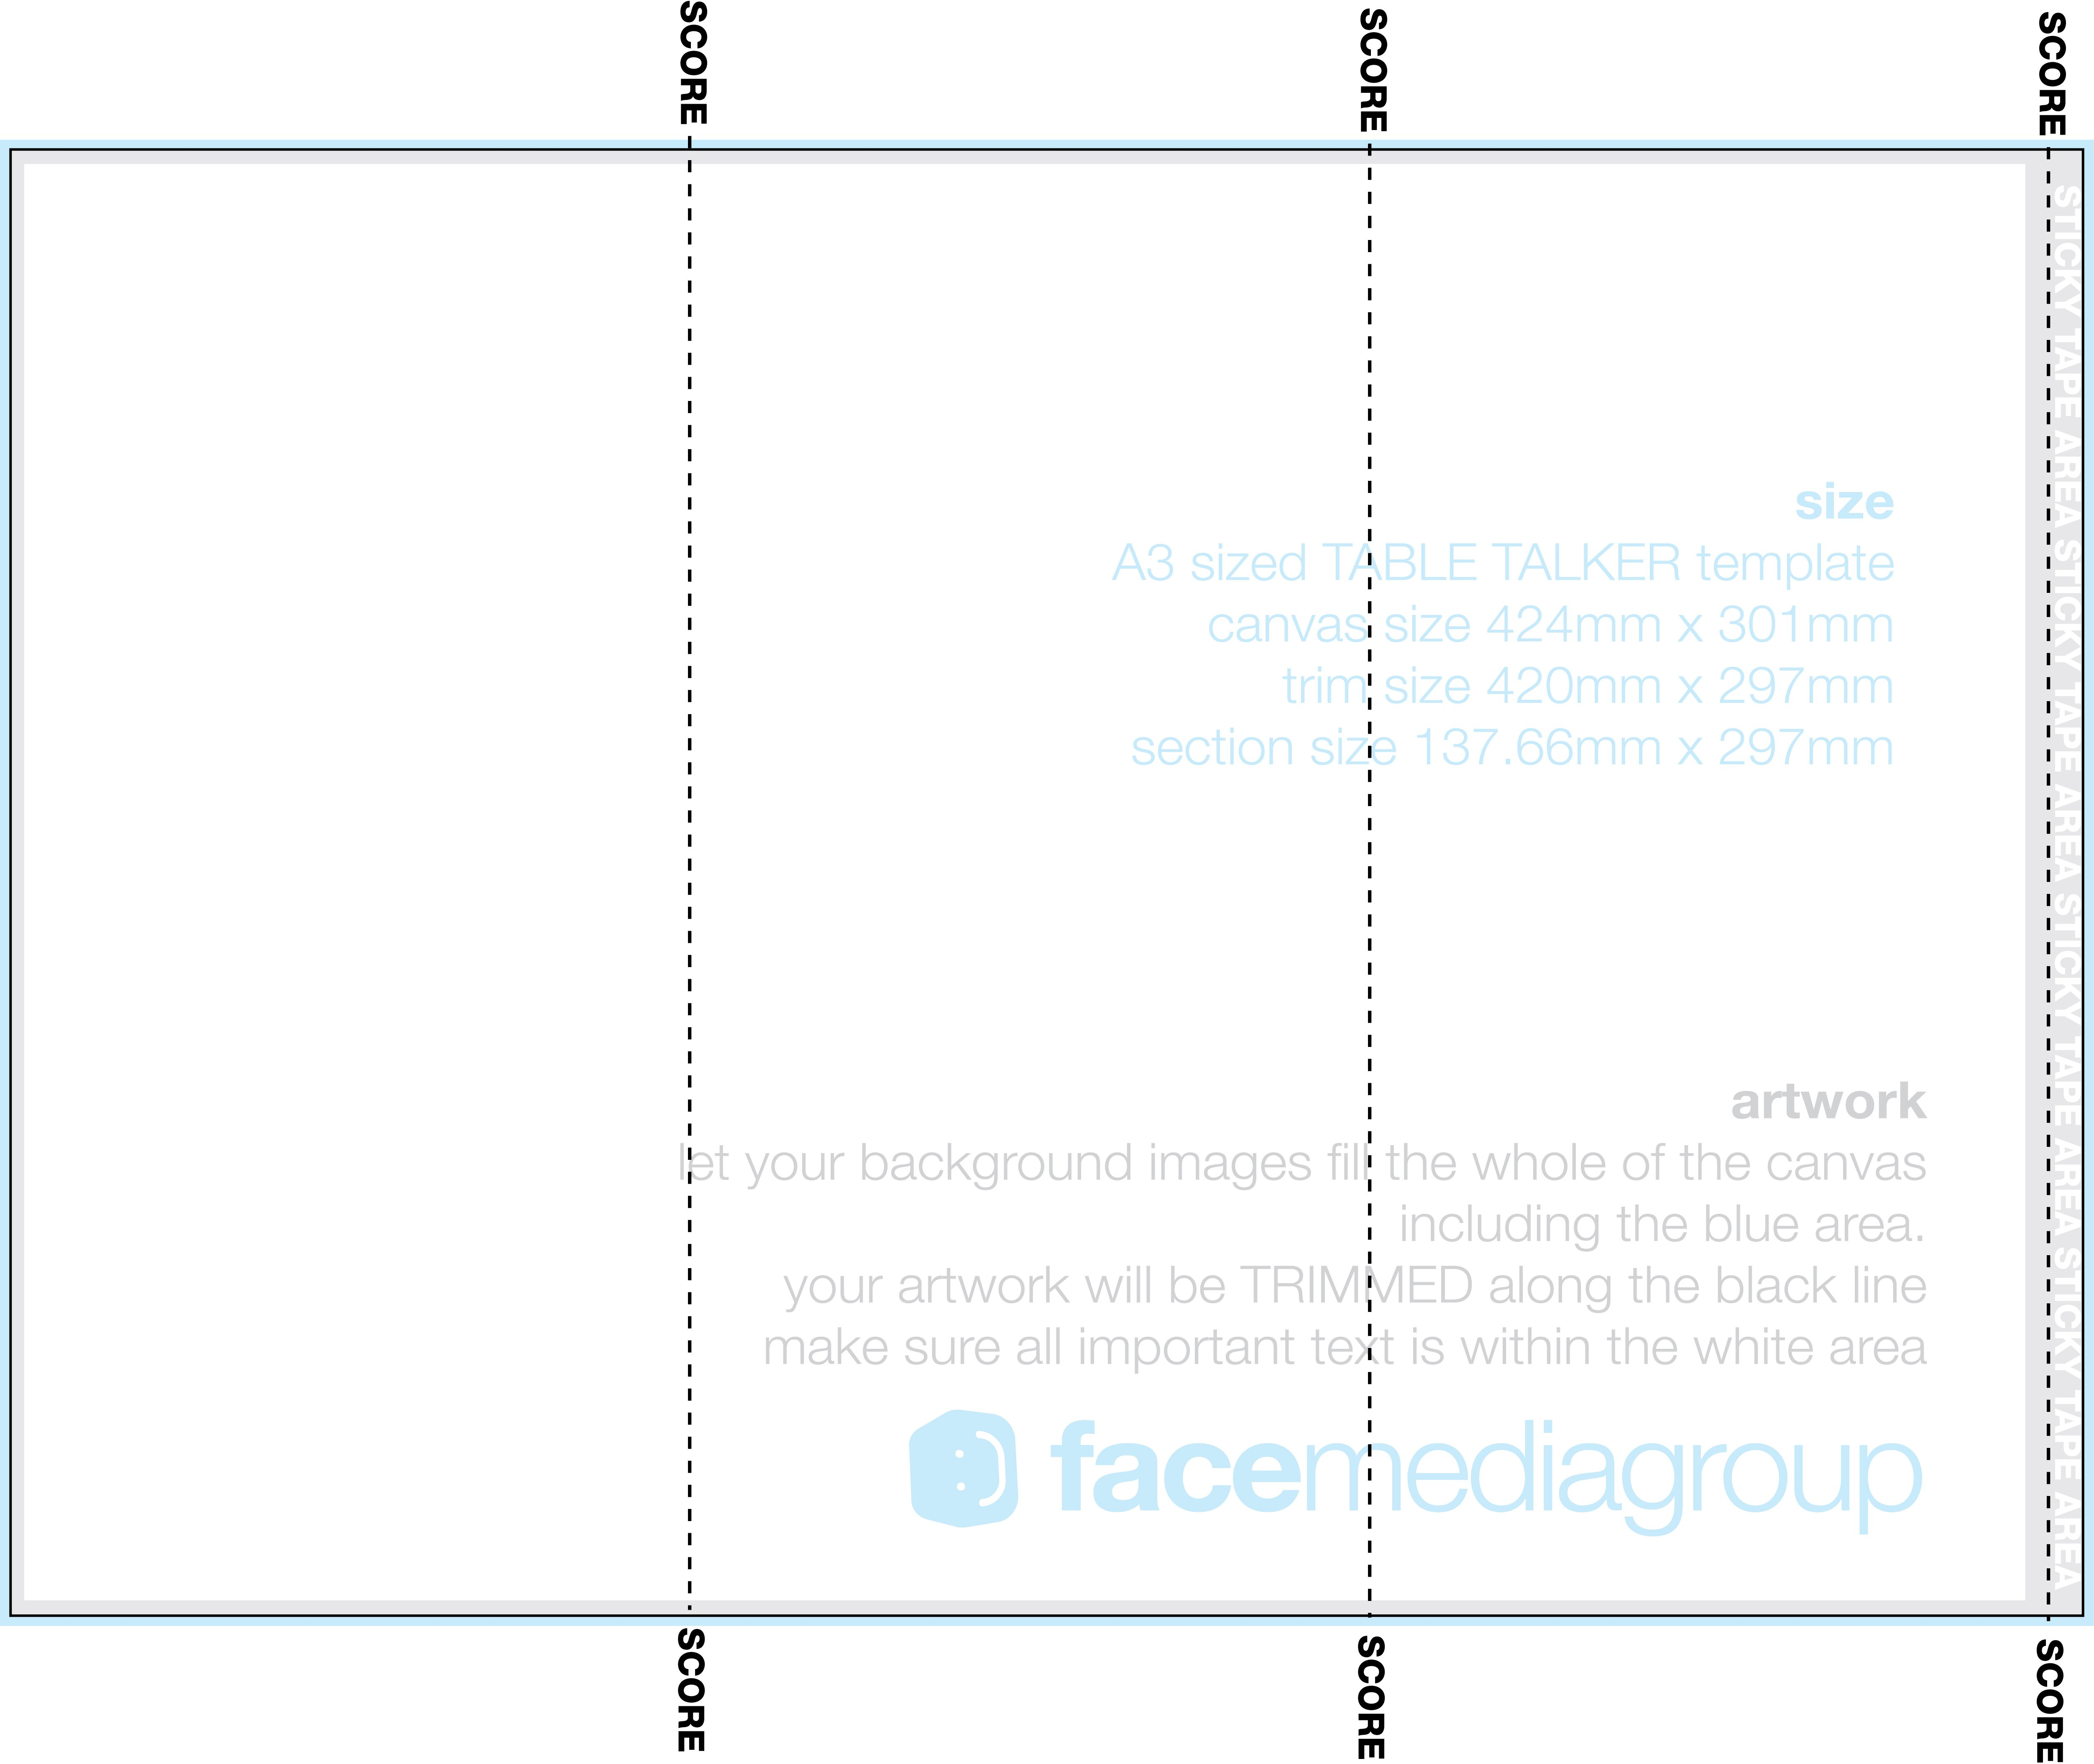 A Trifold Table Talker Template  Photo Page  Everystockphoto In Tri Fold Tent Card Template